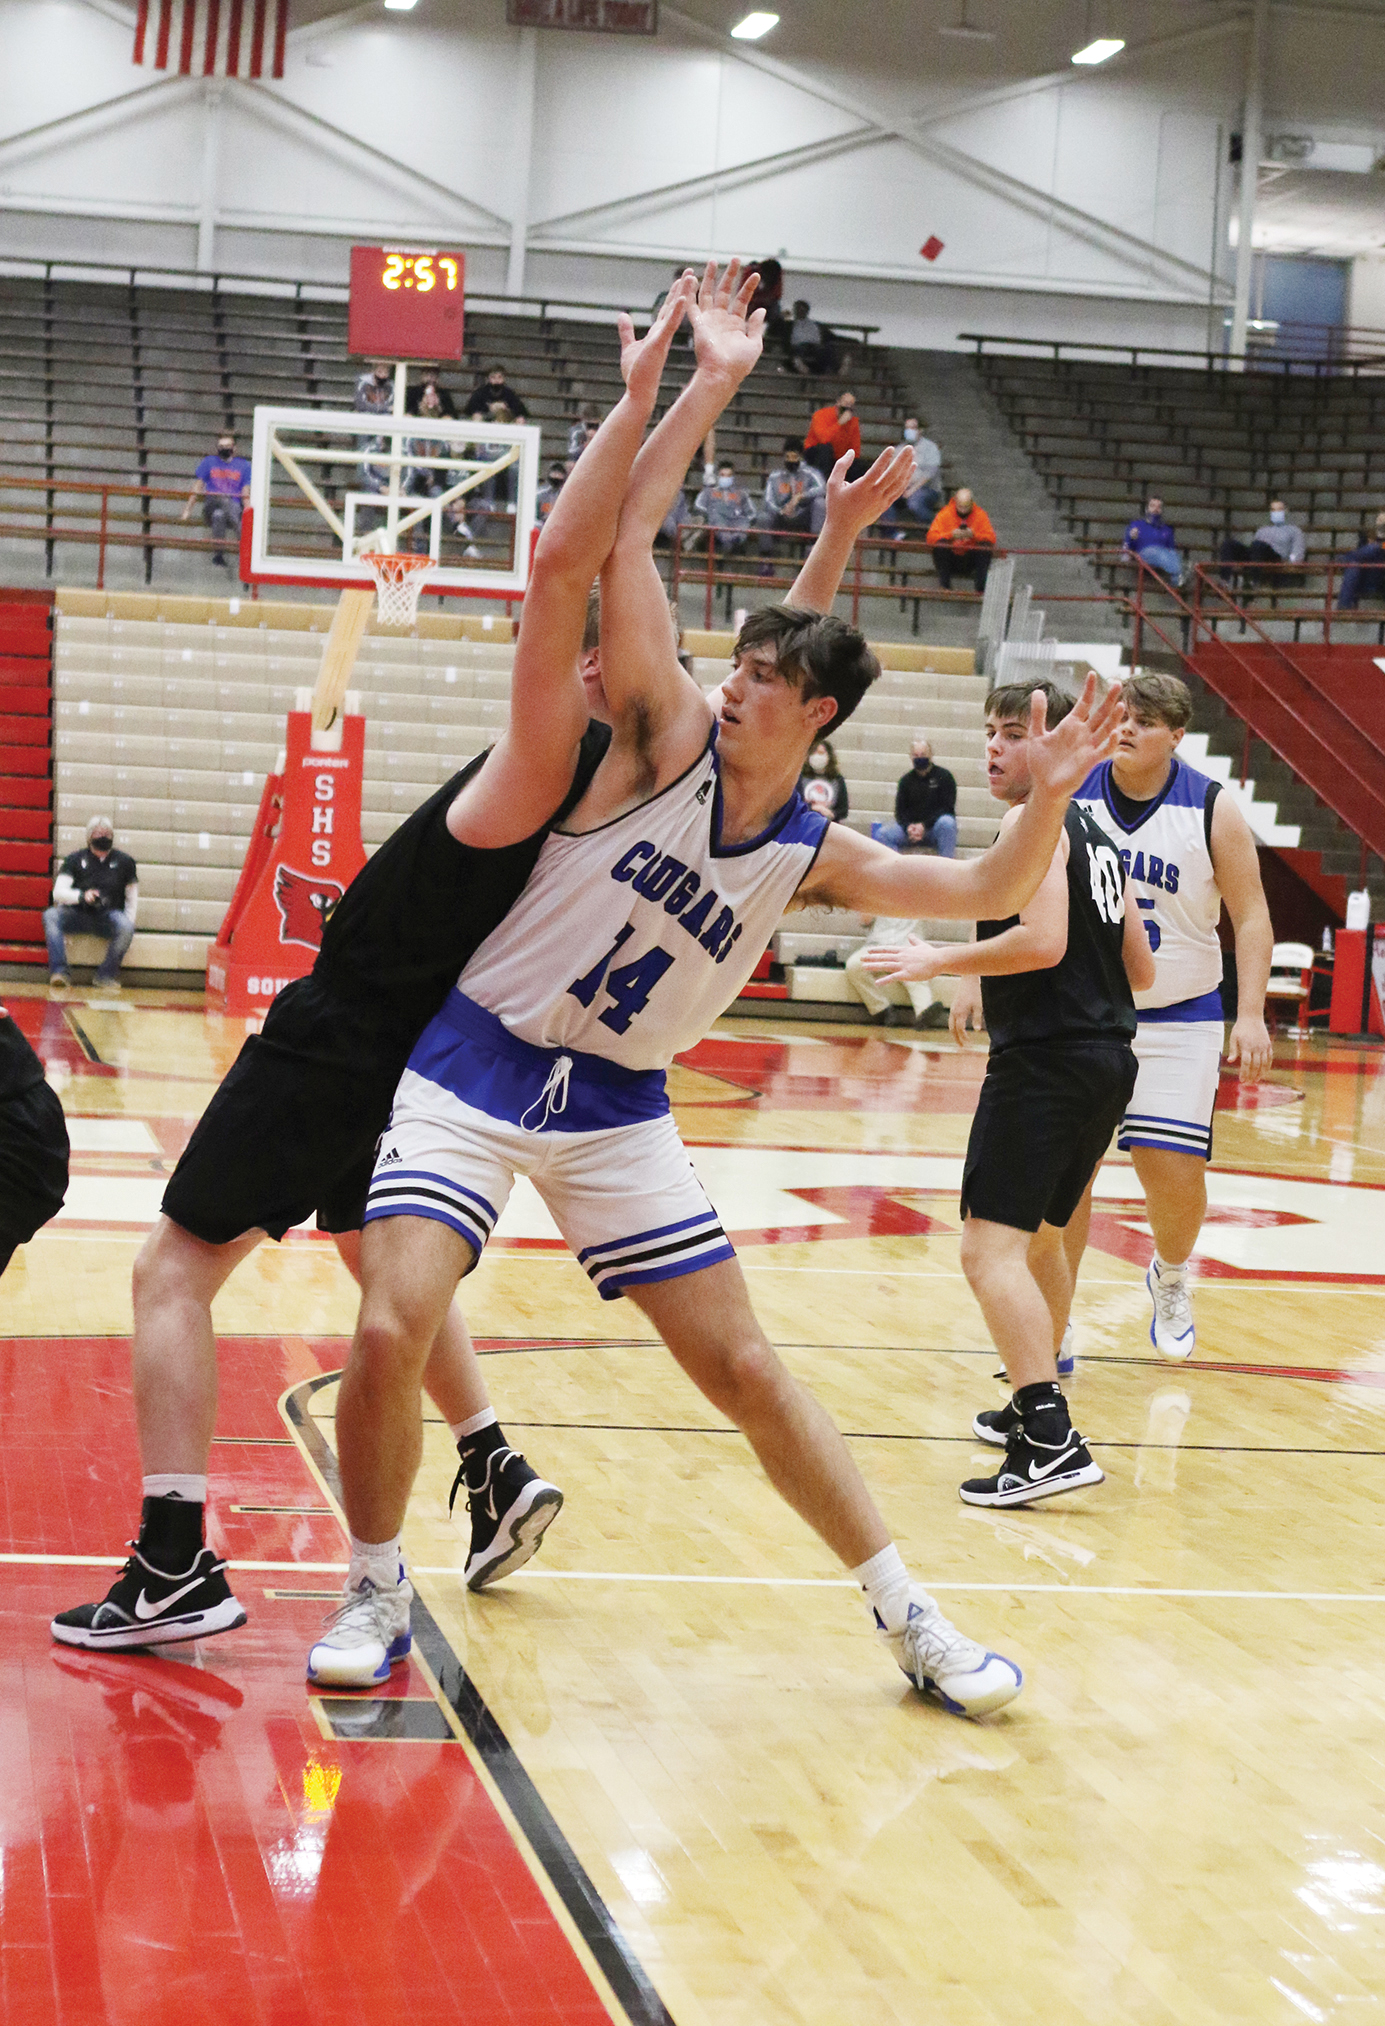 Tough test: Cougars split with pair of aces